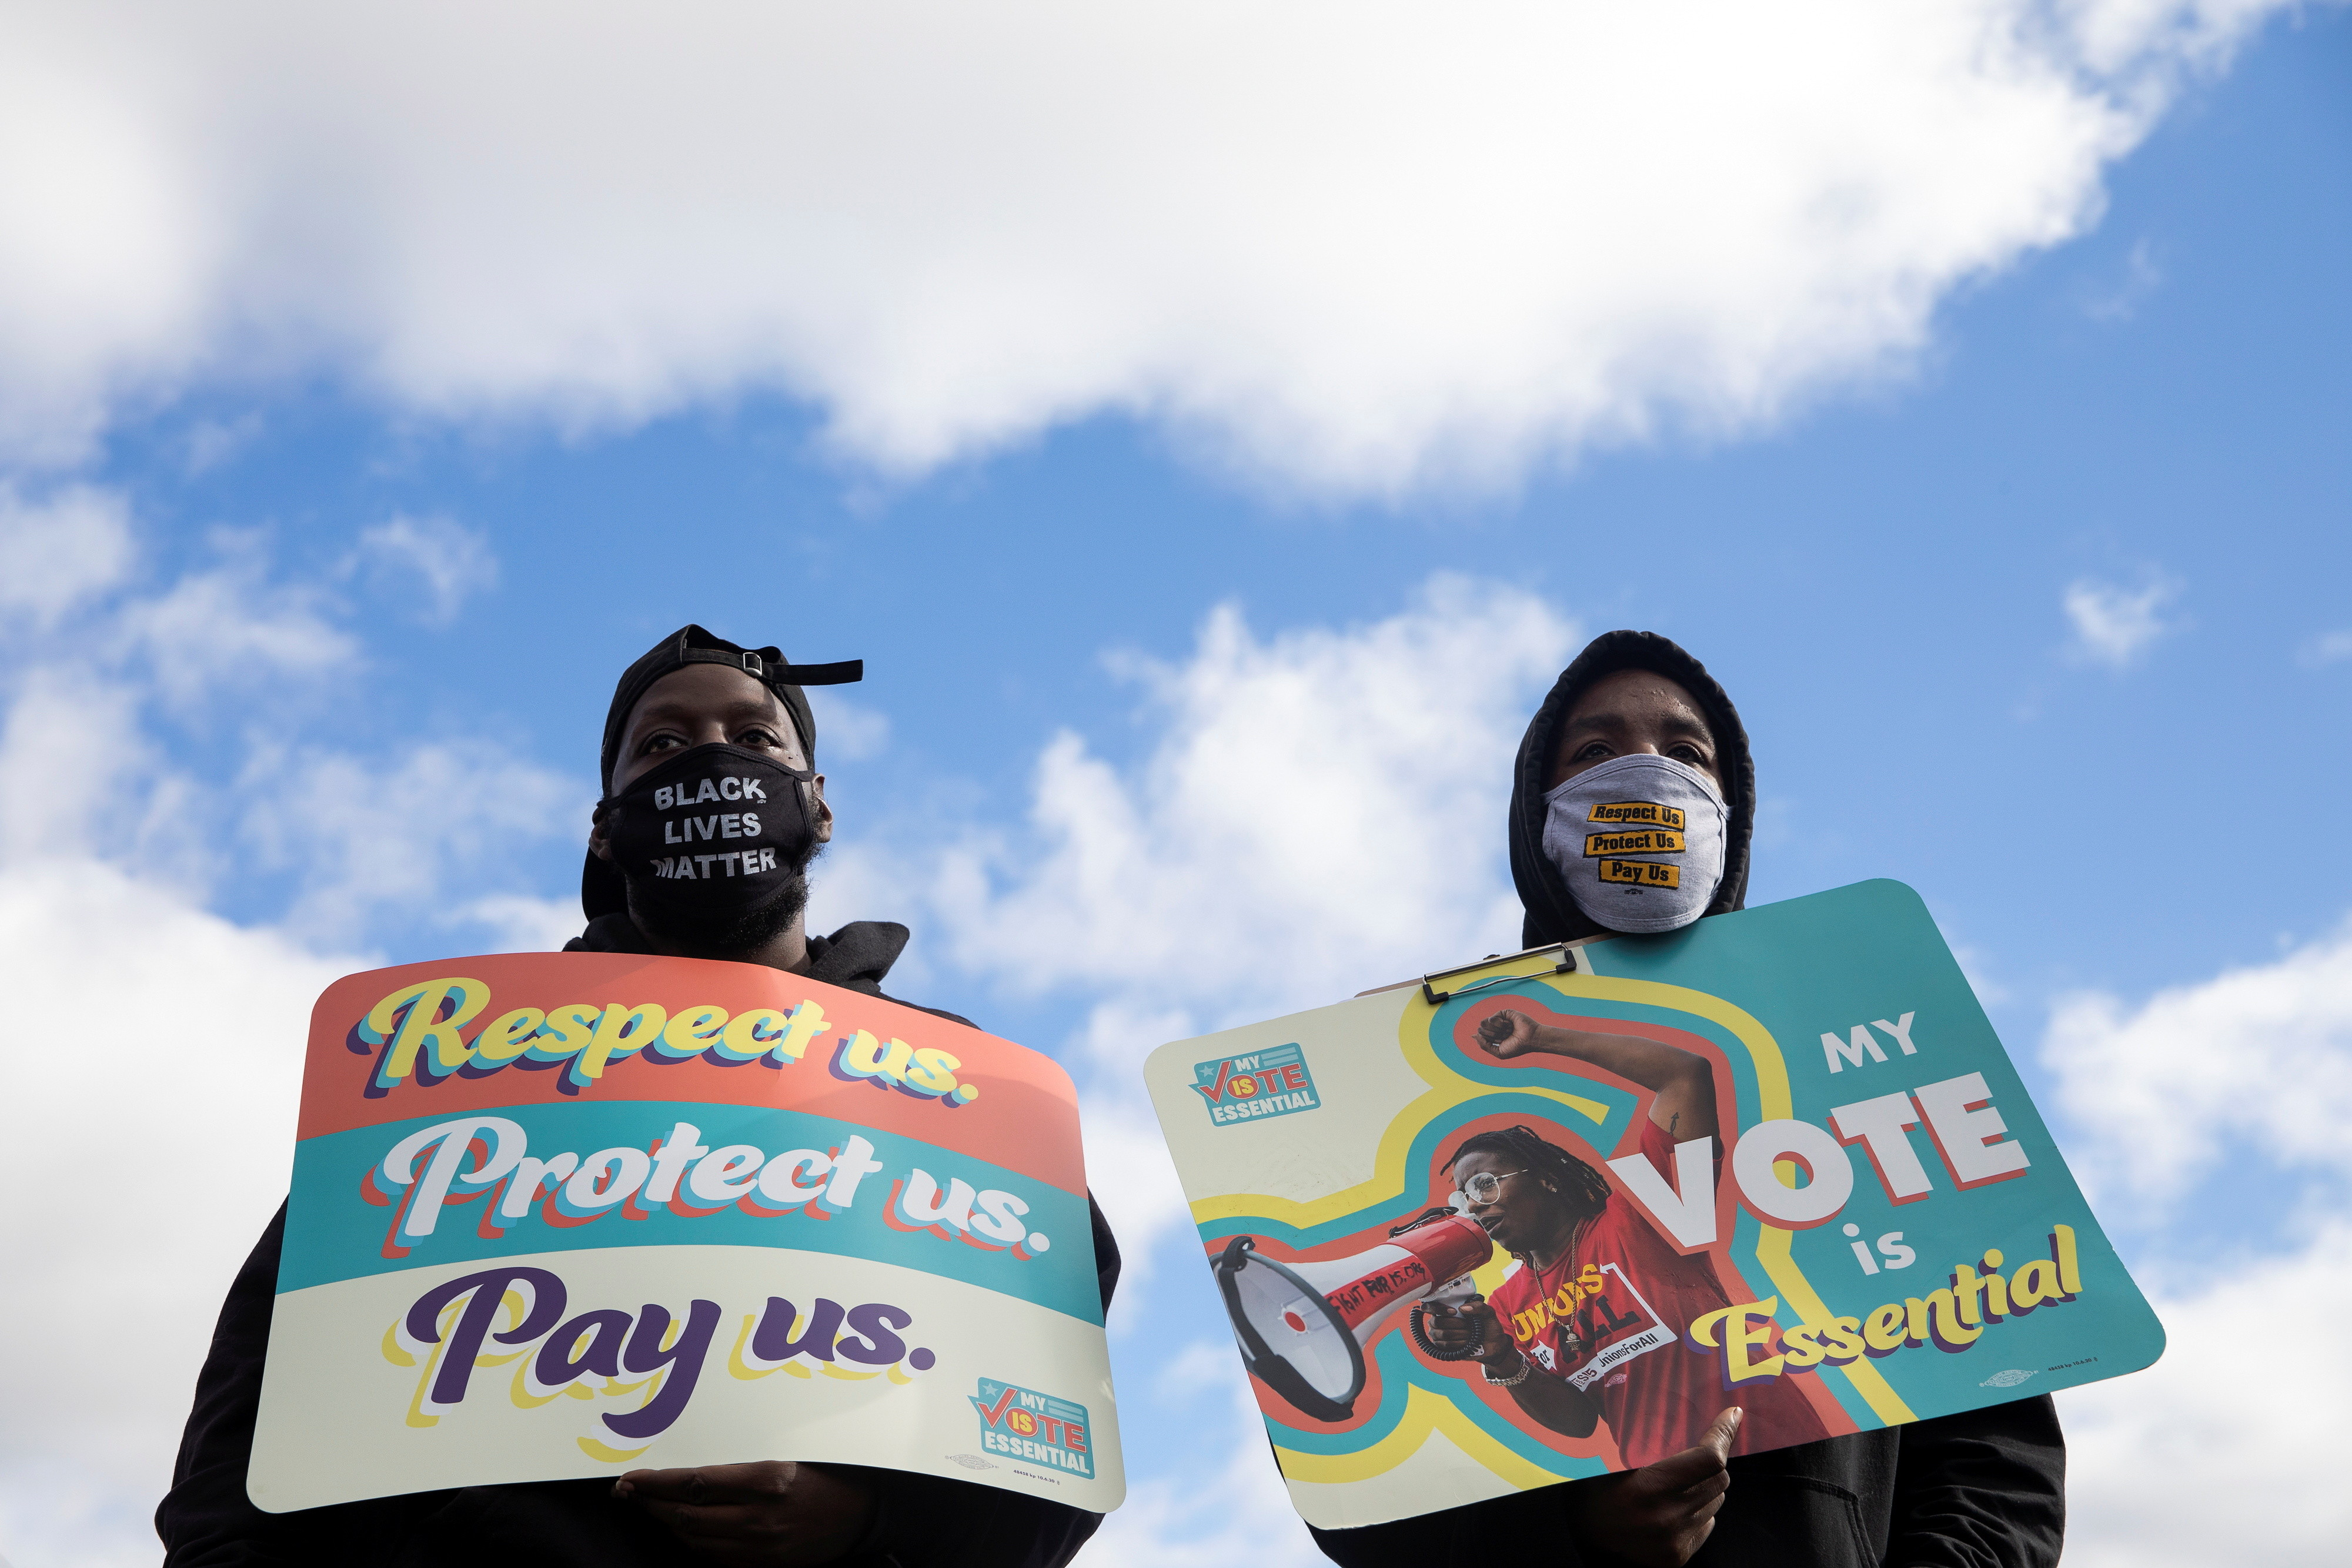 """People join fast-food and nursing home workers during a """"My Vote is Essential"""" rally before casting their early ballots, amid the coronavirus disease (COVID-19) concerns at Wayne County Community College in Detroit, Michigan, U.S., October 24, 2020.  REUTERS/Emily Elconin - RC26PJ9M0LAO"""